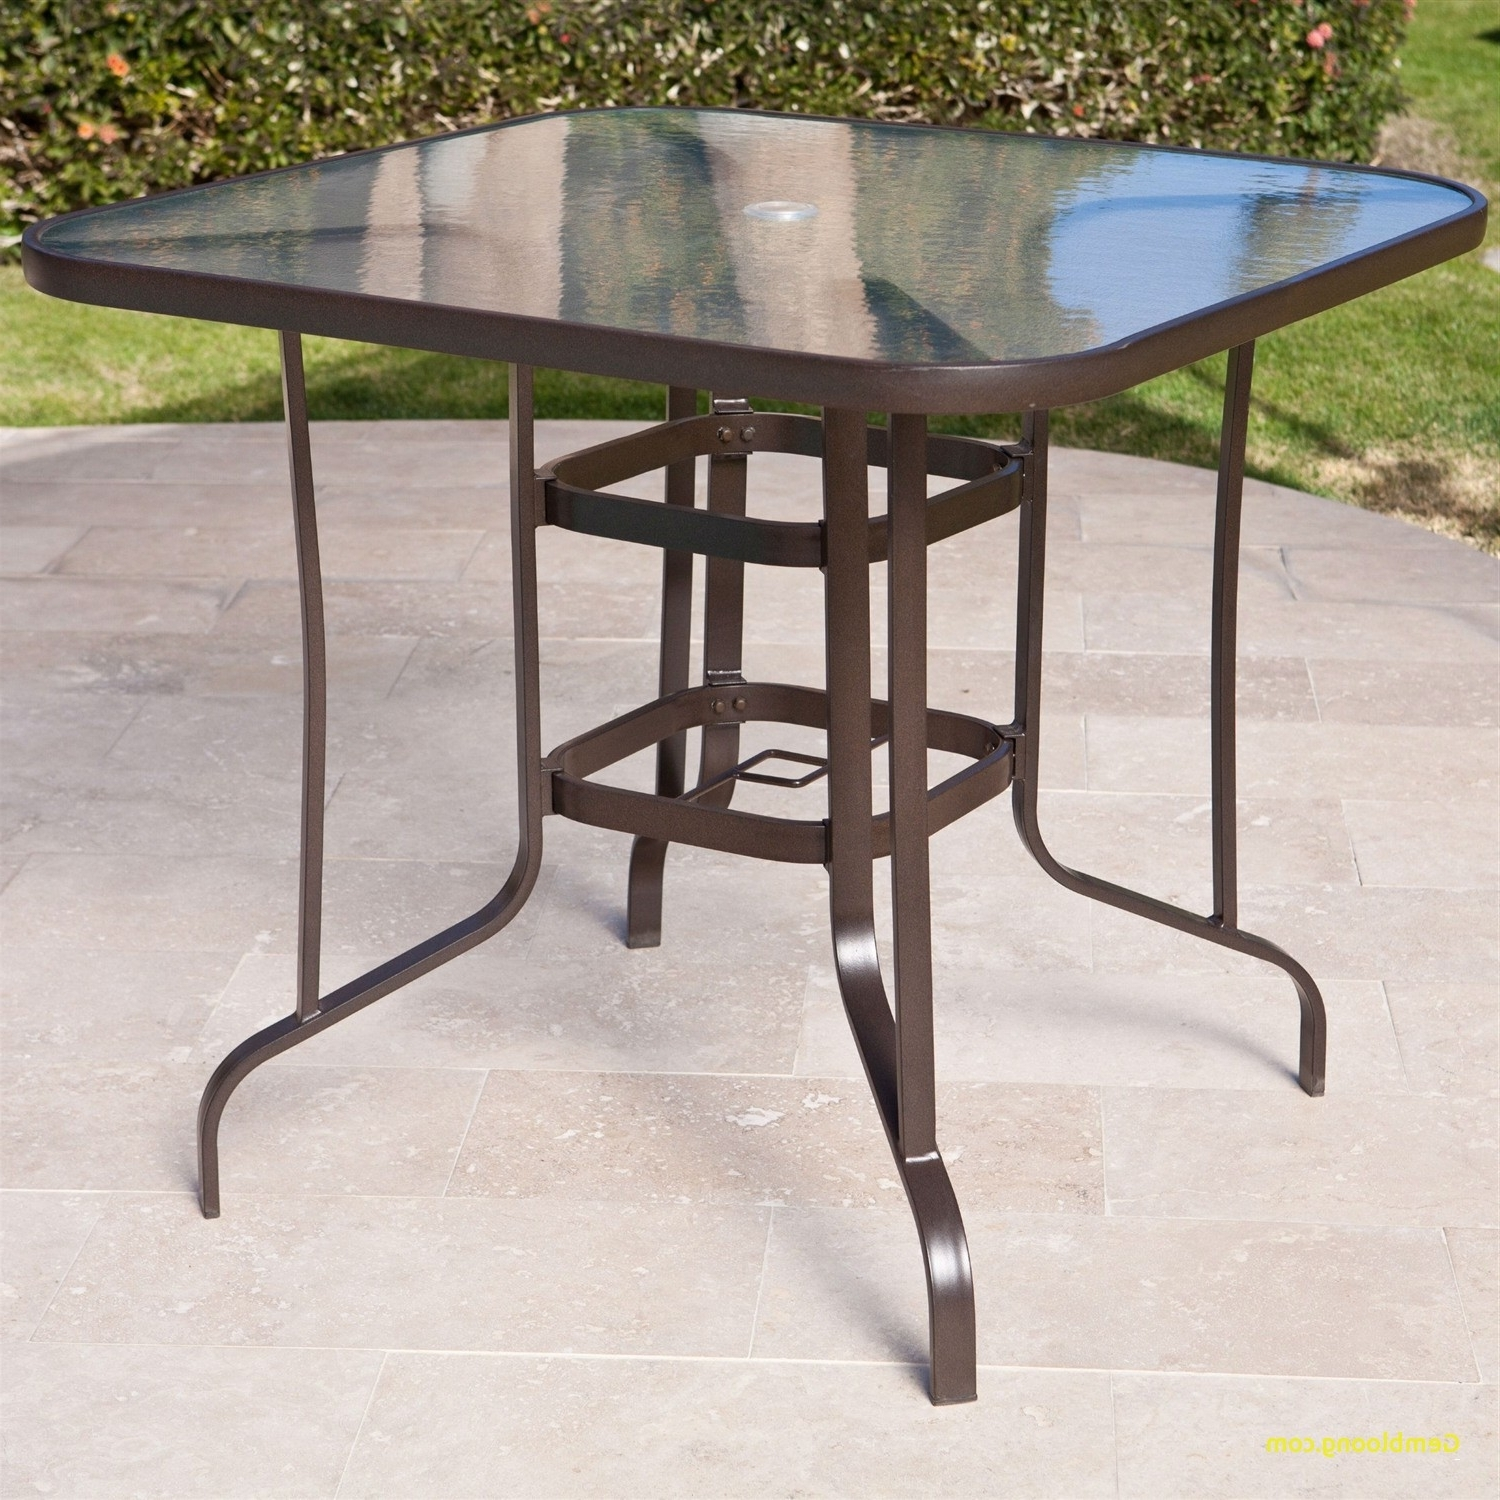 Widely Used Patio Table With Umbrella Hole – Pelikansurf Intended For Small Patio Tables With Umbrellas Hole (View 20 of 20)